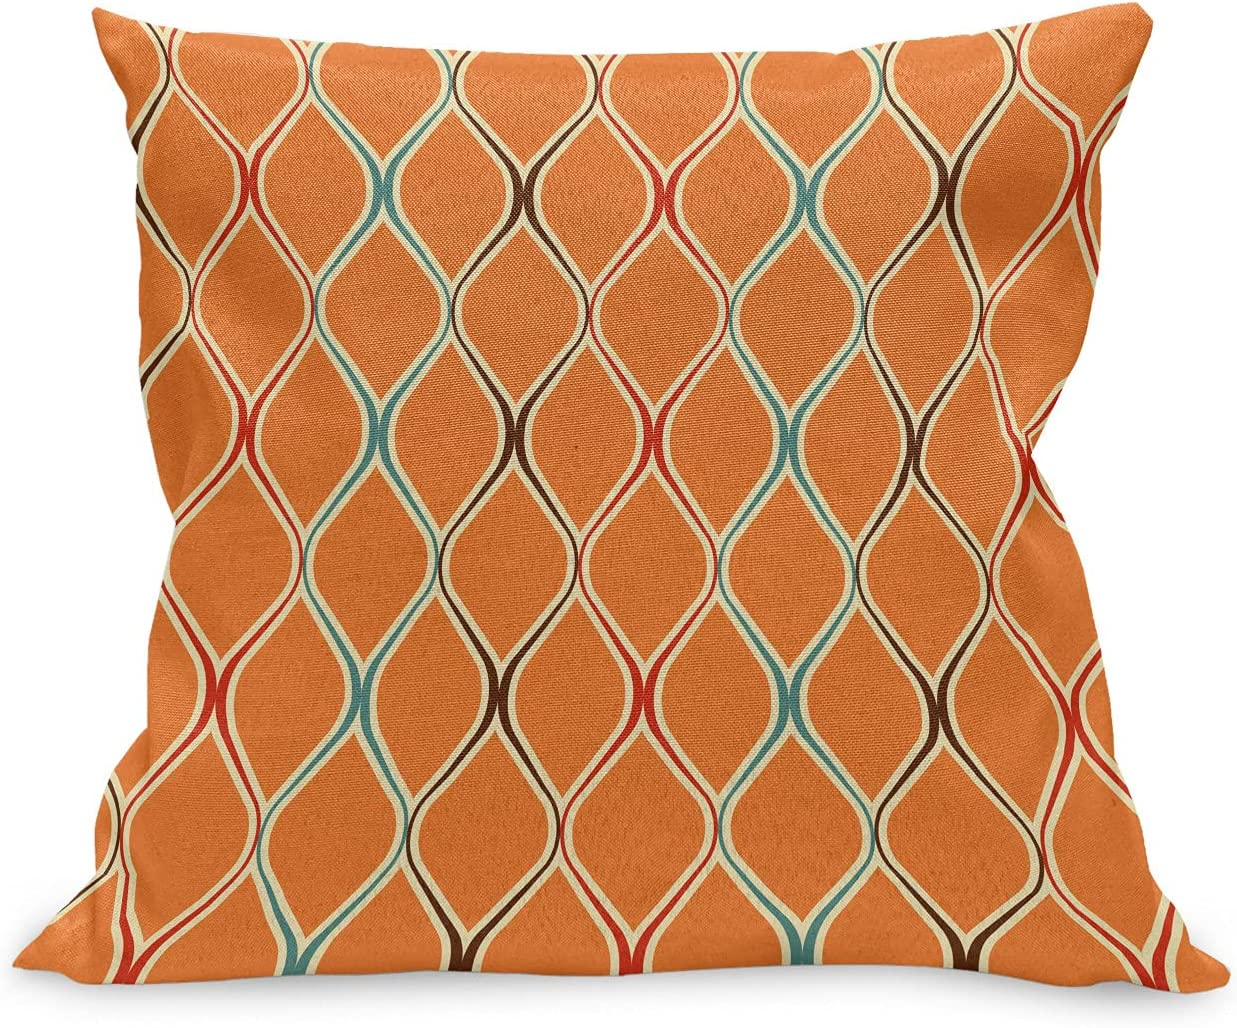 Max 85% OFF Ambesonne Orange Throw Pillow Cushion Fashion Limited price sale Old Case Vibrant